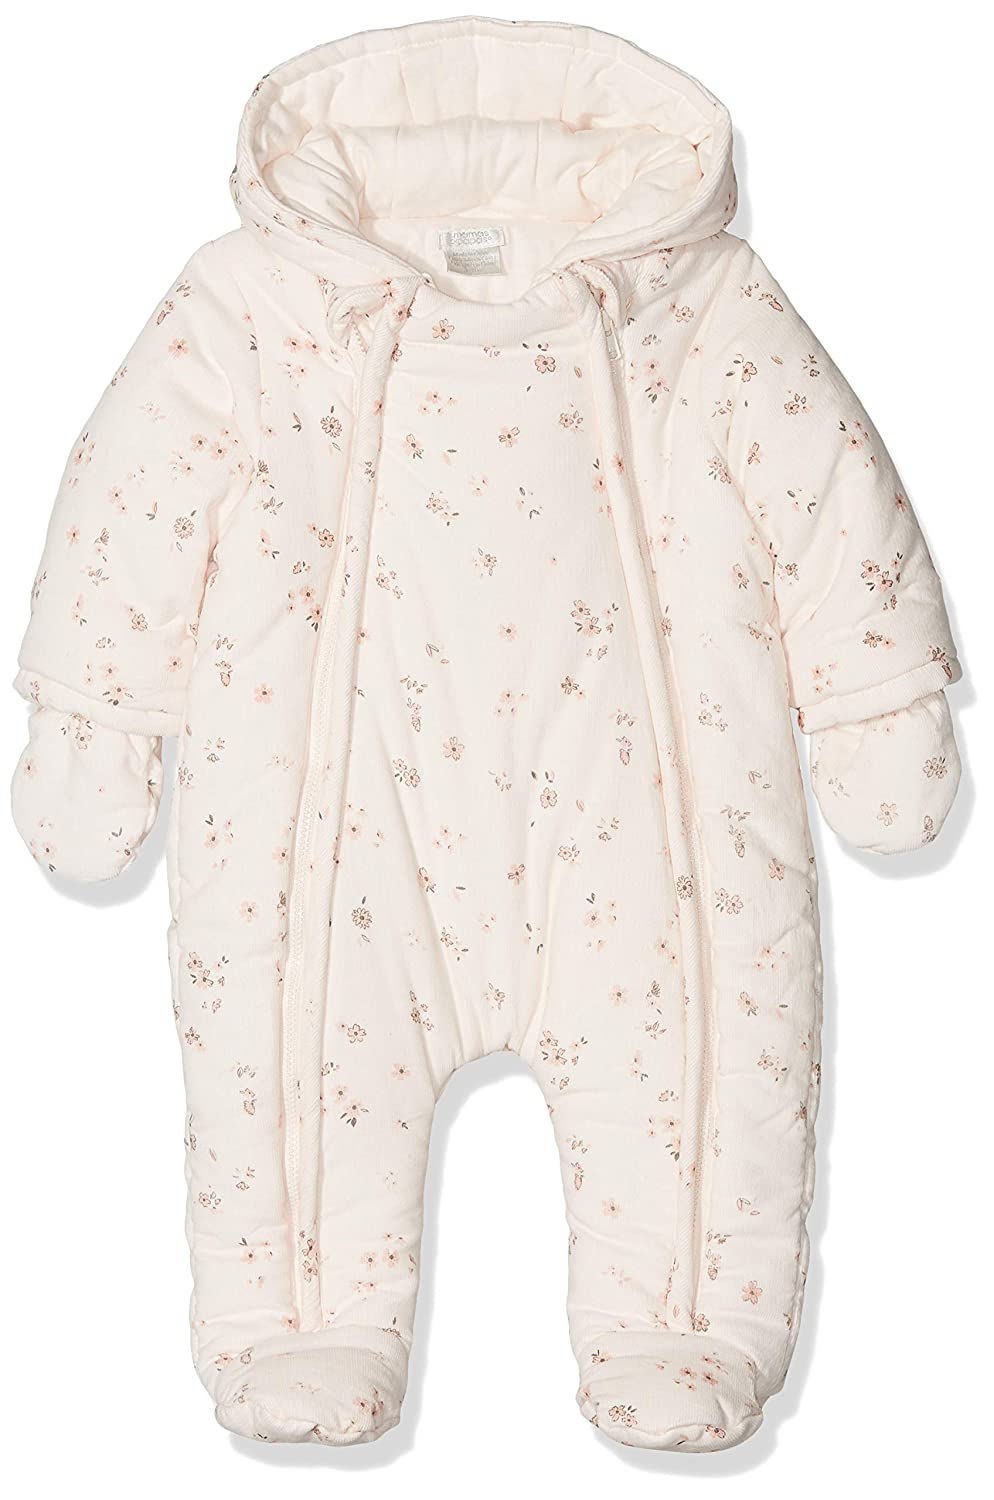 Mamas & Papas Baby Girls' Floral Print Pramsuit Snowsuit Mamas and Papas